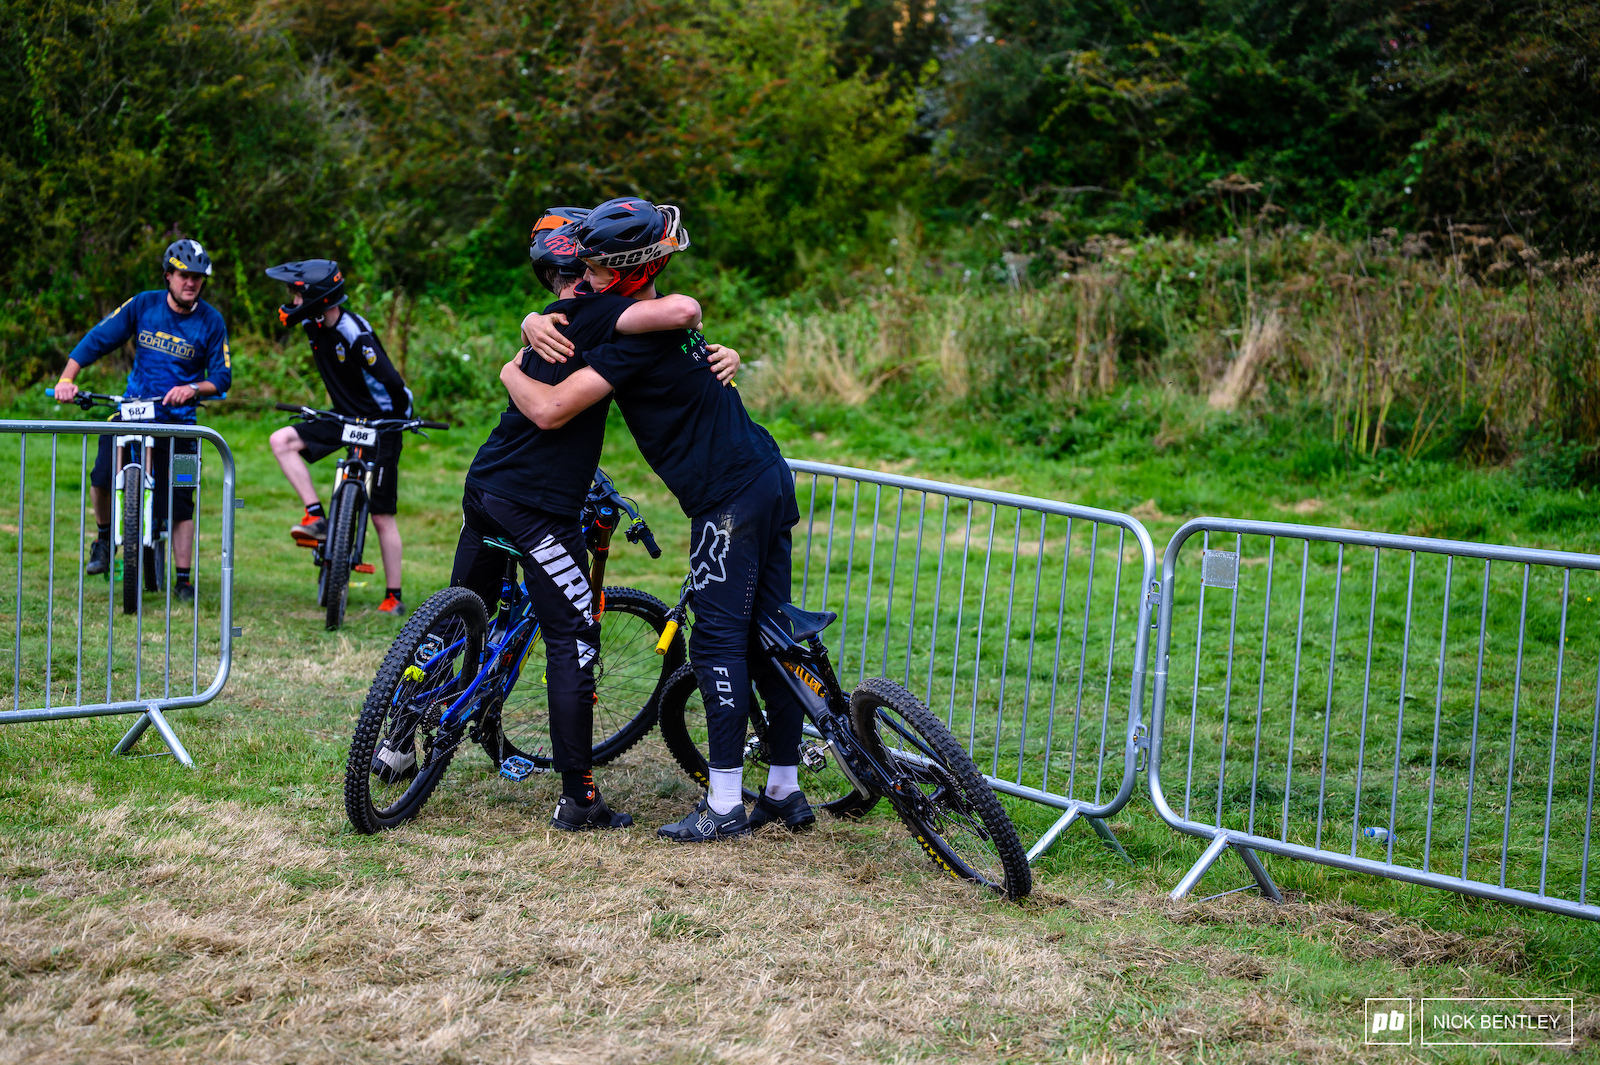 Riders were competitors up until the finish line and friends after